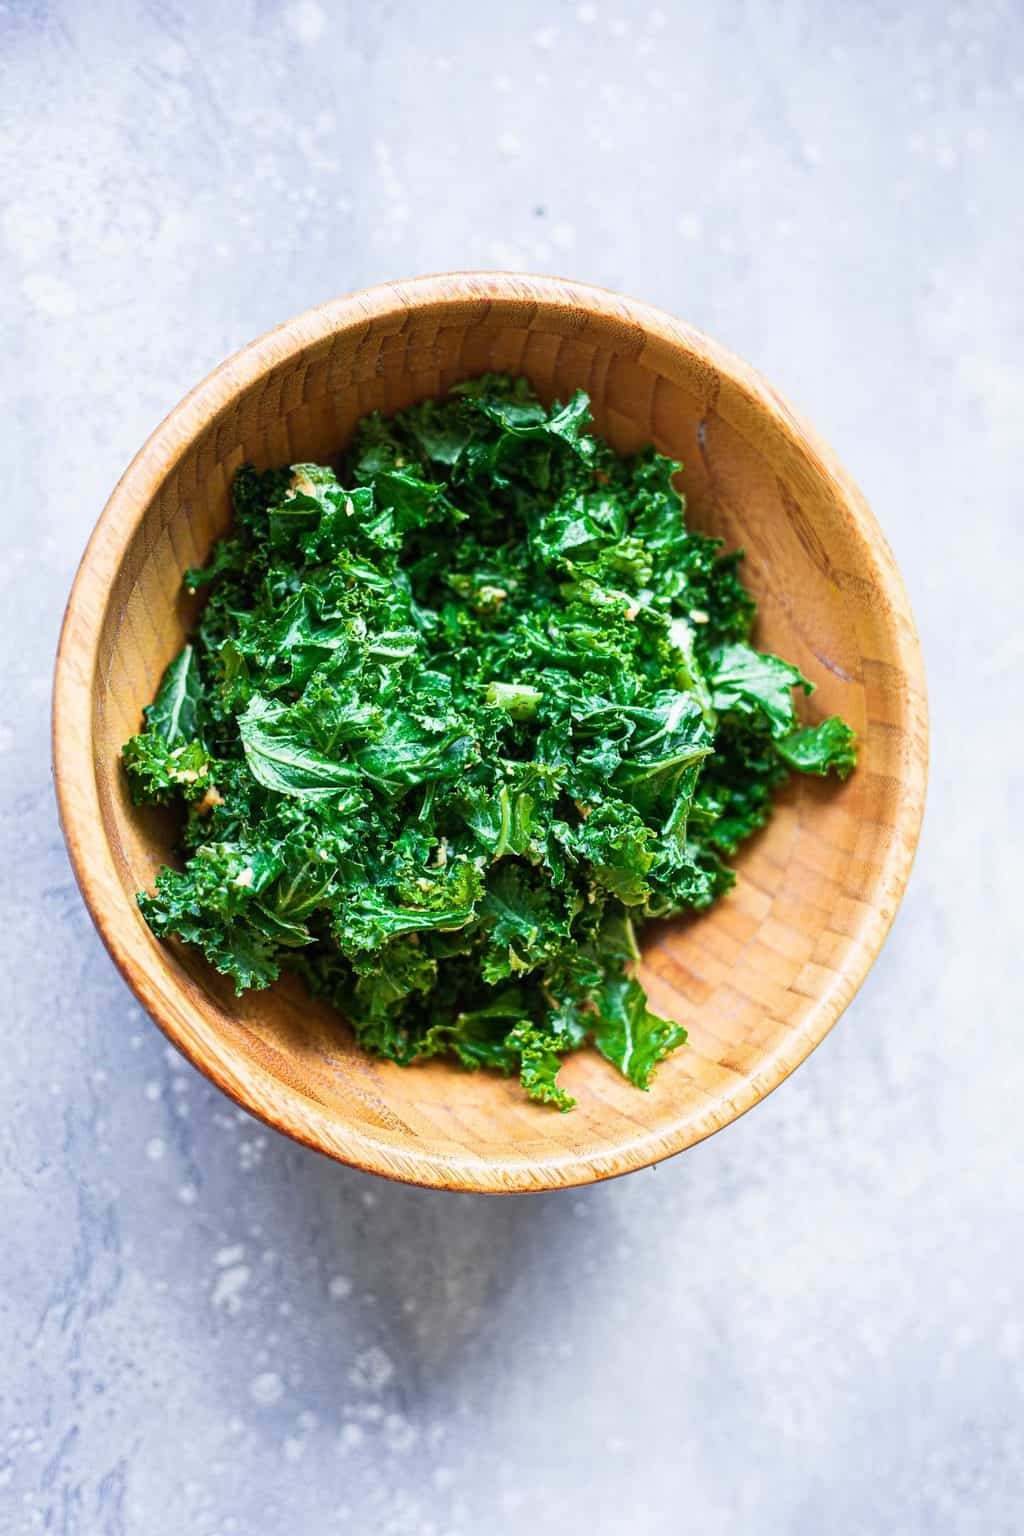 Massaged kale in a mixing bowl